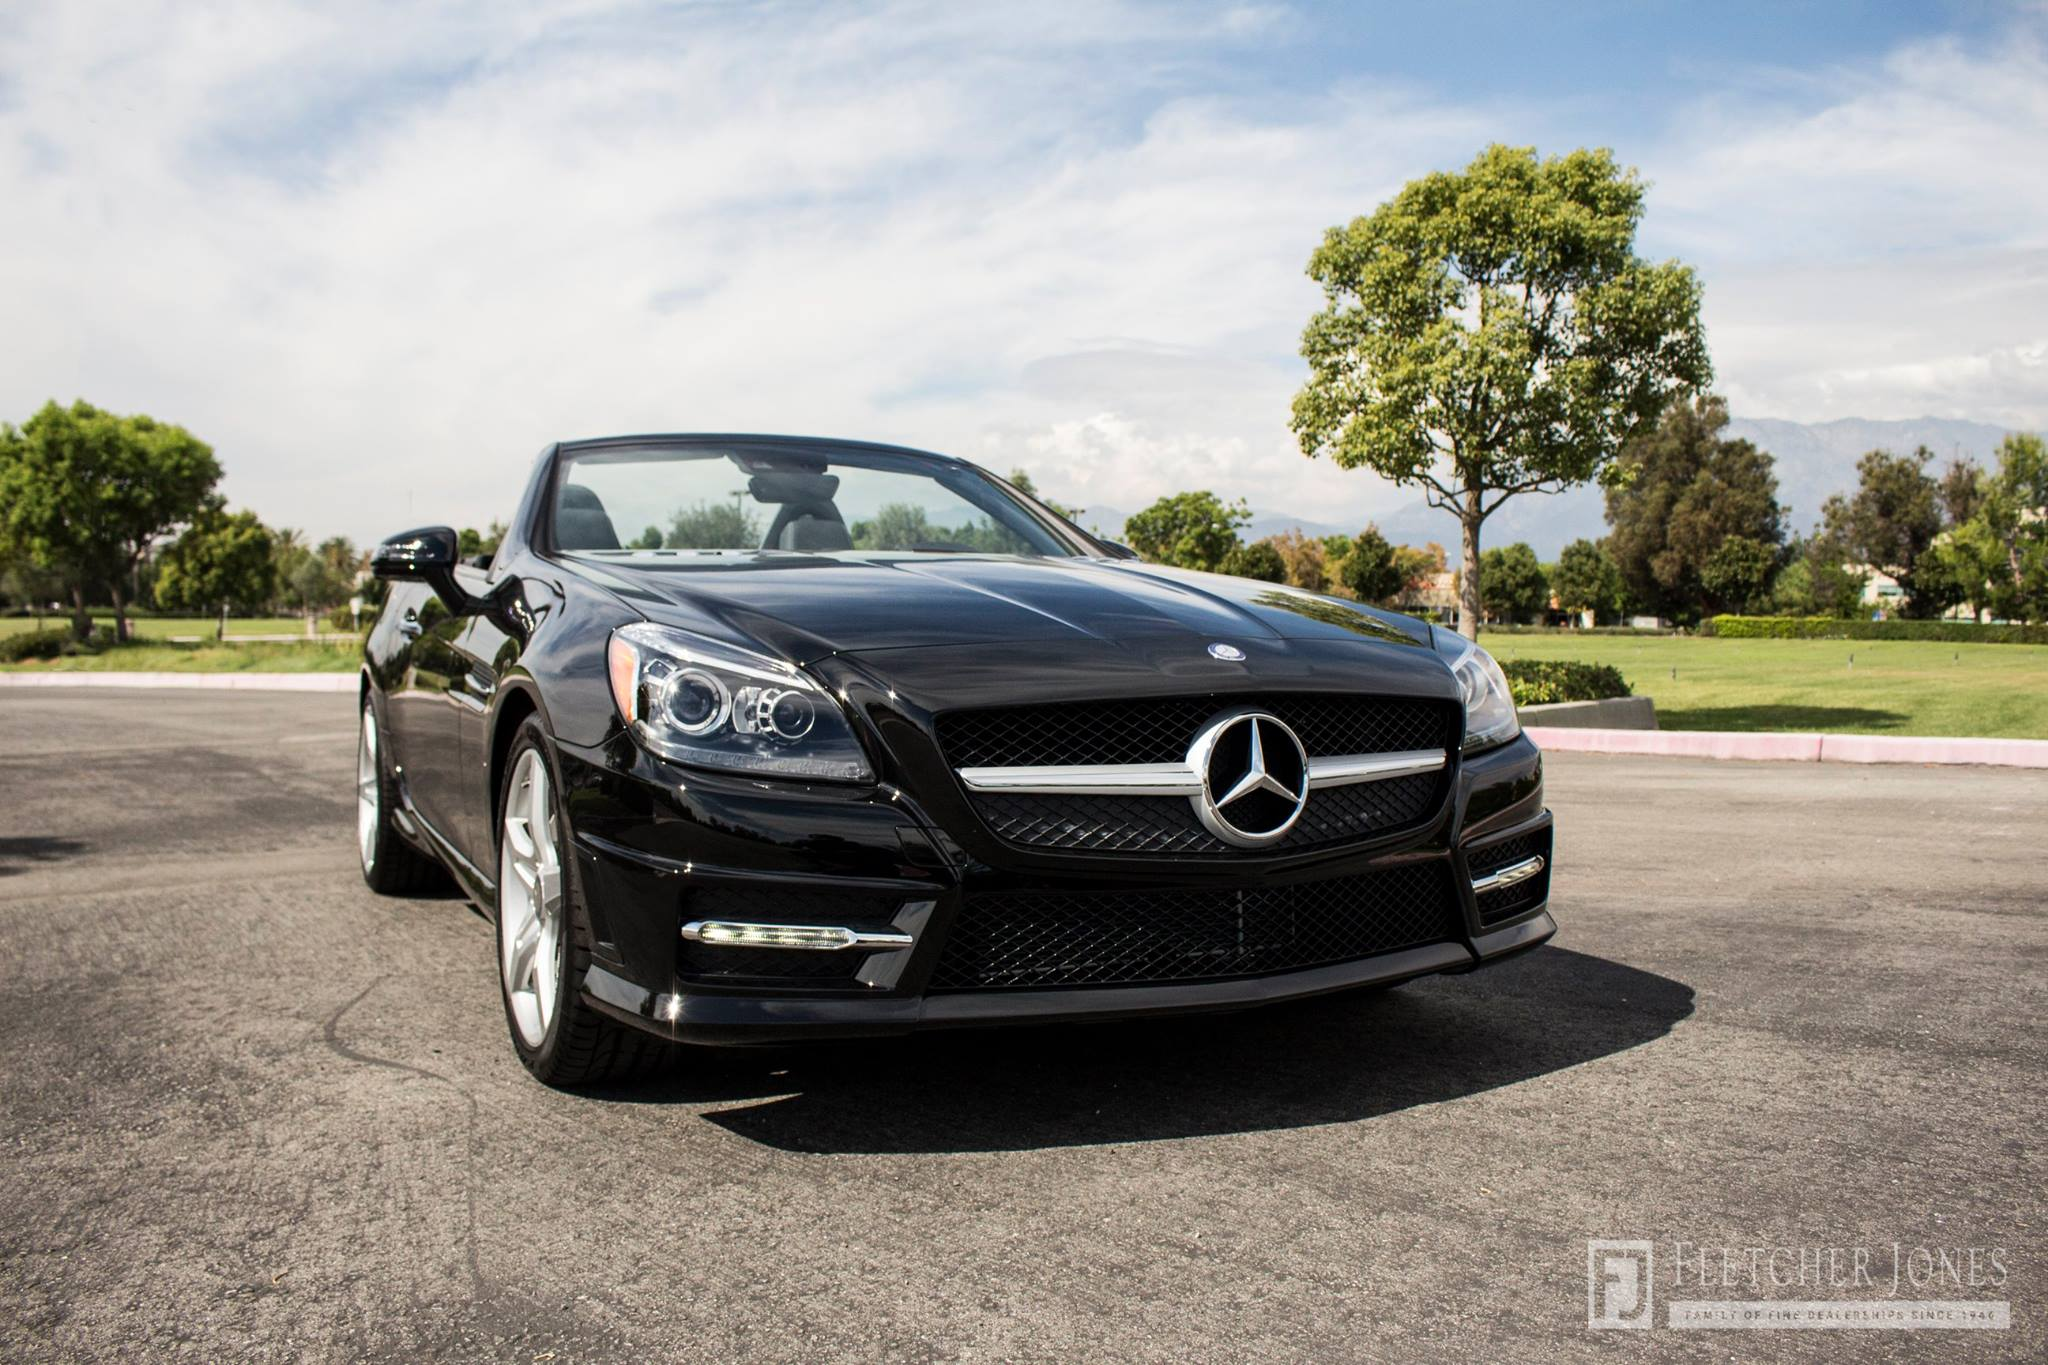 3 top reasons to love the all new 2017 mercedes benz sl class for Mercedes benz of ontario ca